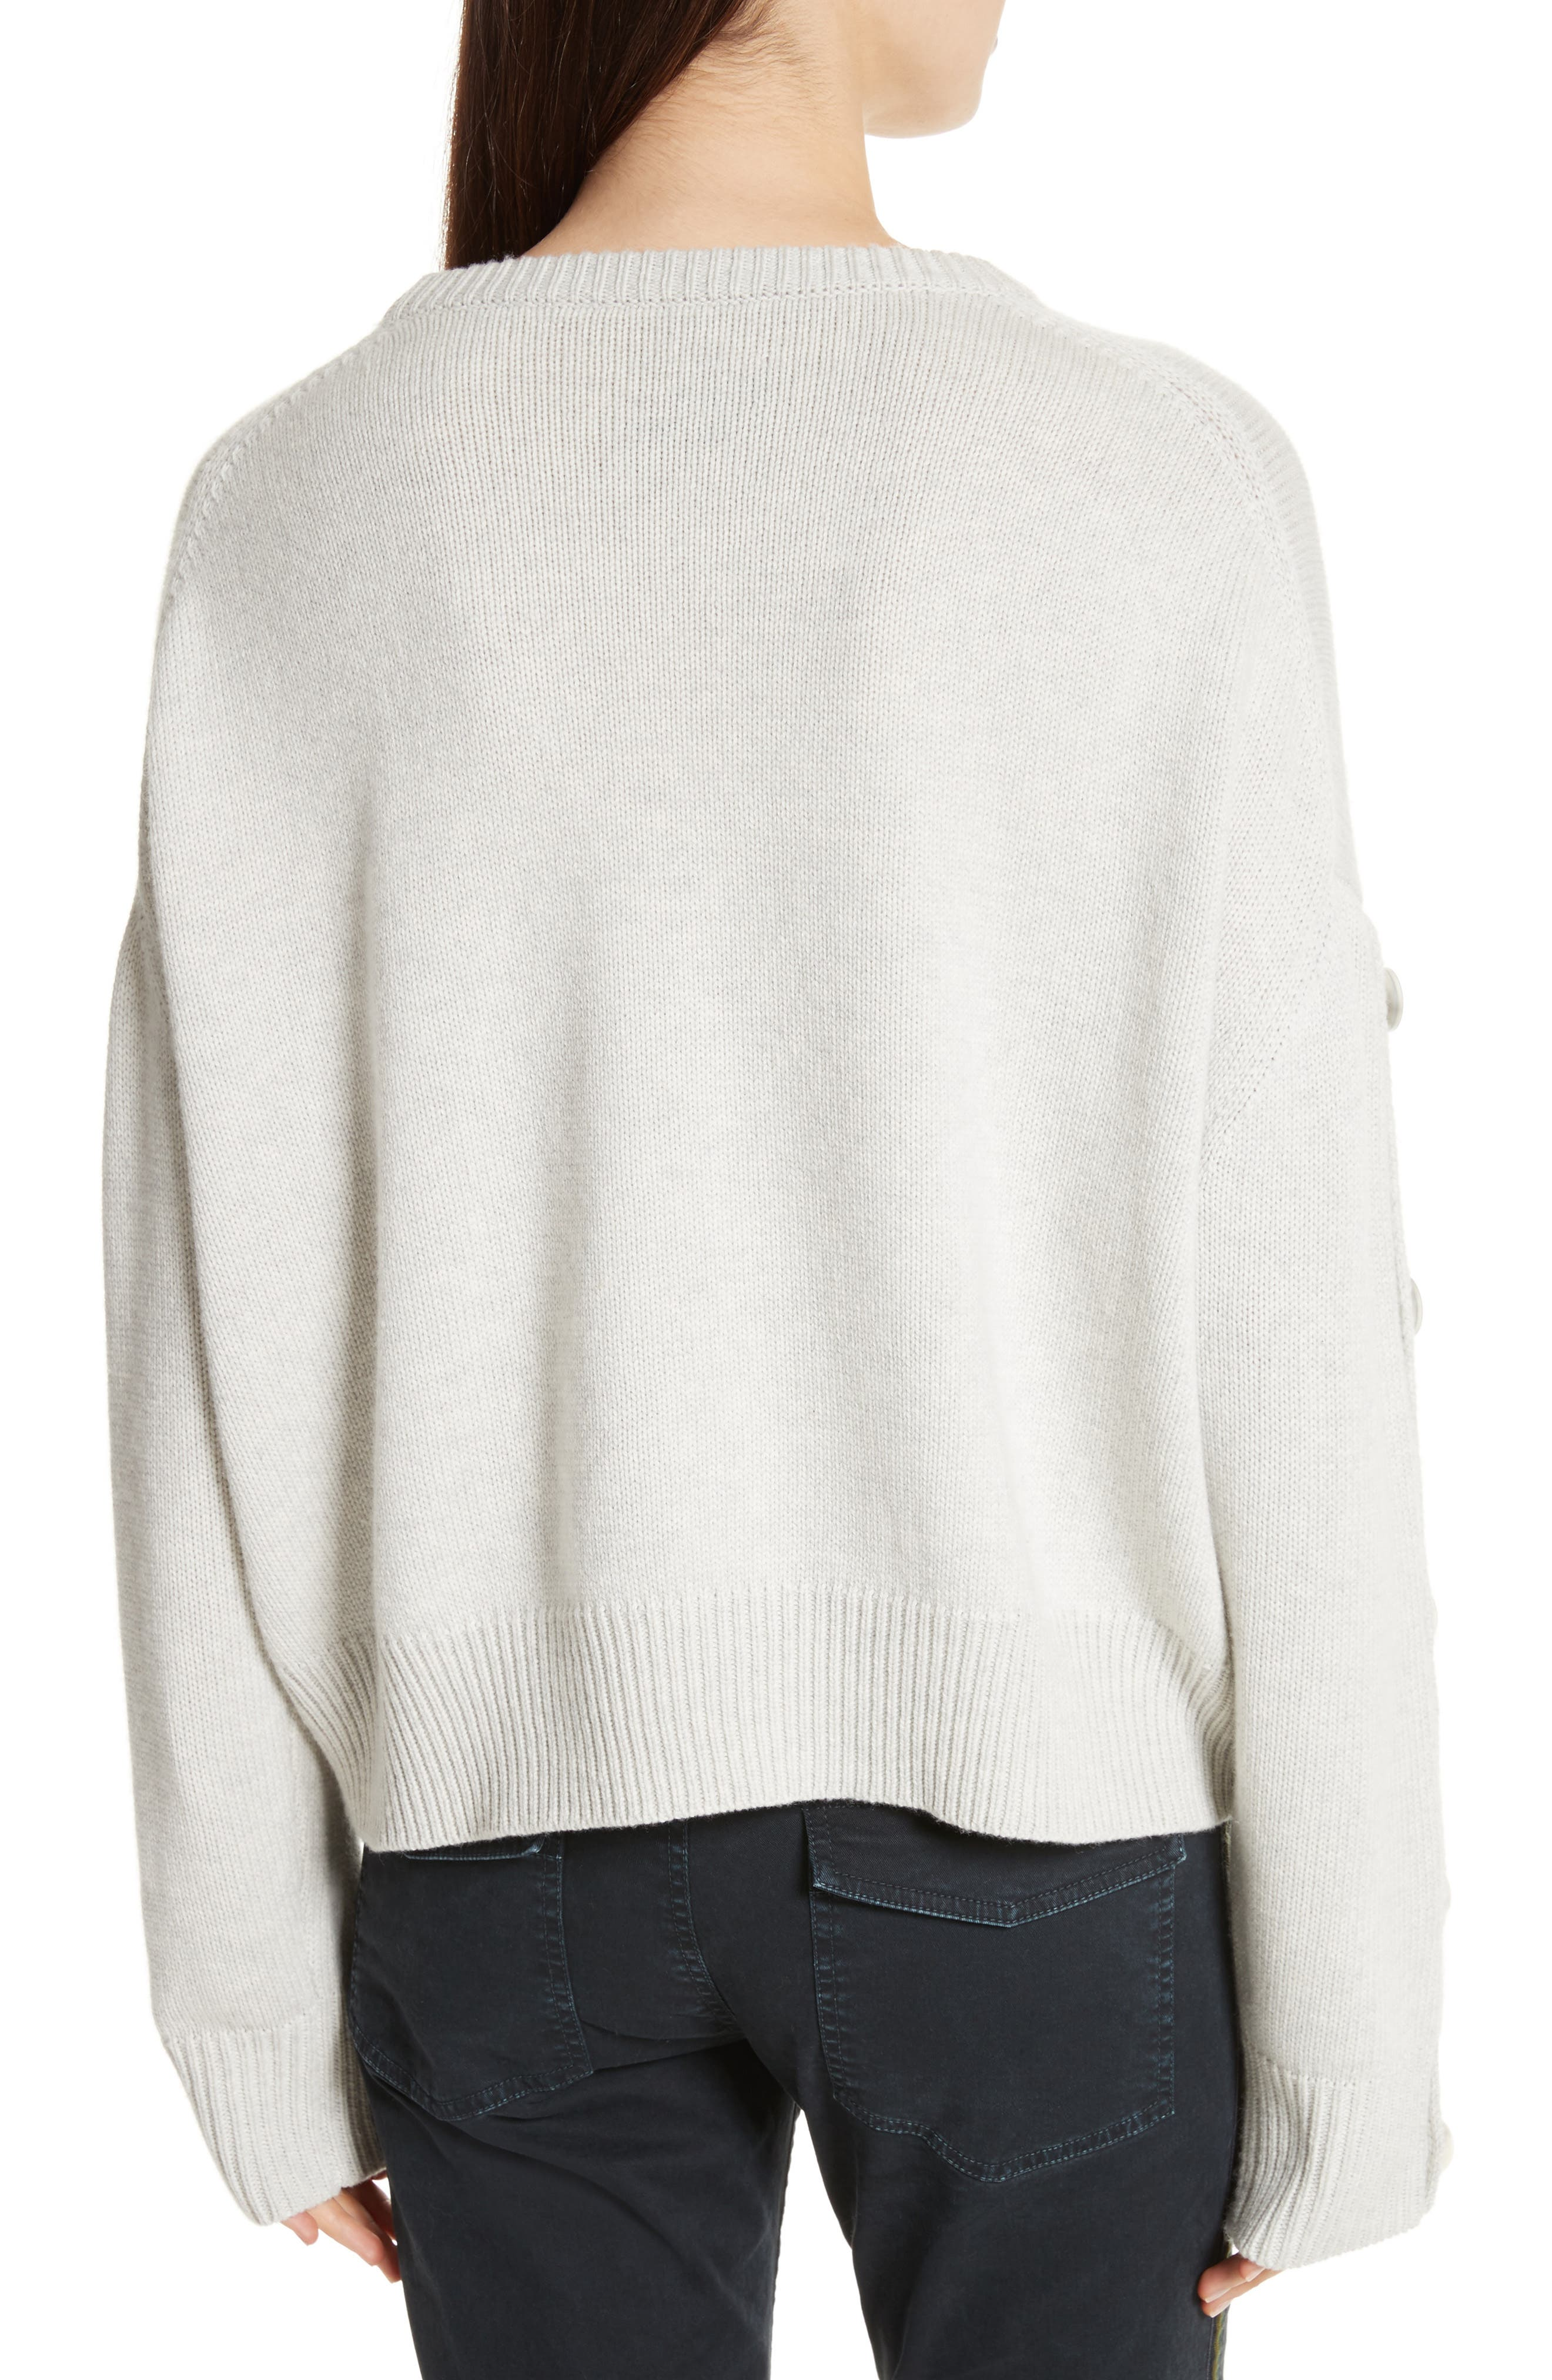 Martina Wool & Cashmere Sweater,                             Alternate thumbnail 2, color,                             Light Grey